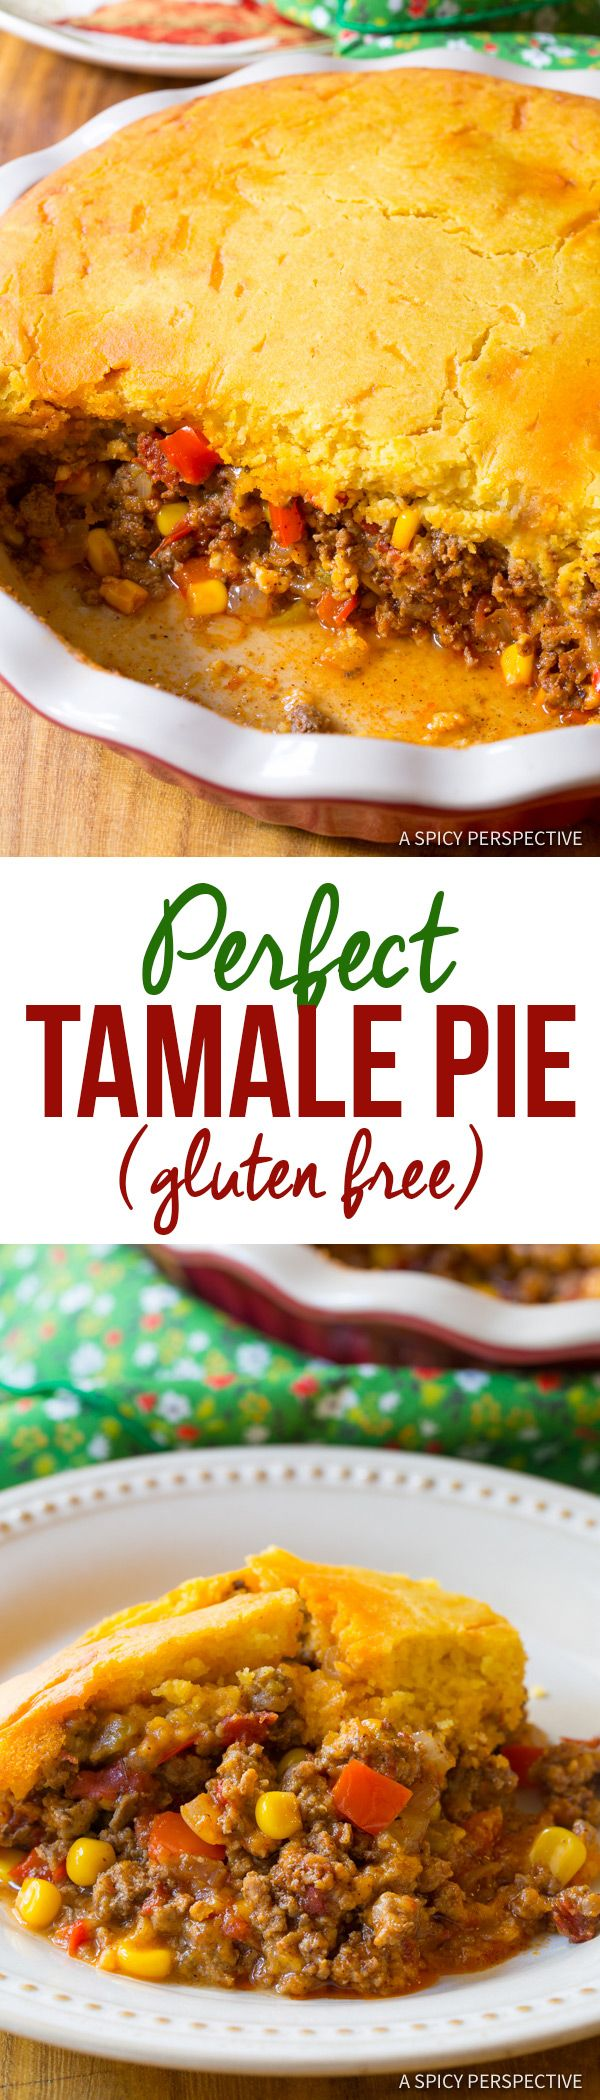 The Perfect Tamale Pie Recipe - Easy to Make and Gluten Free! | ASpicyPerspective.com